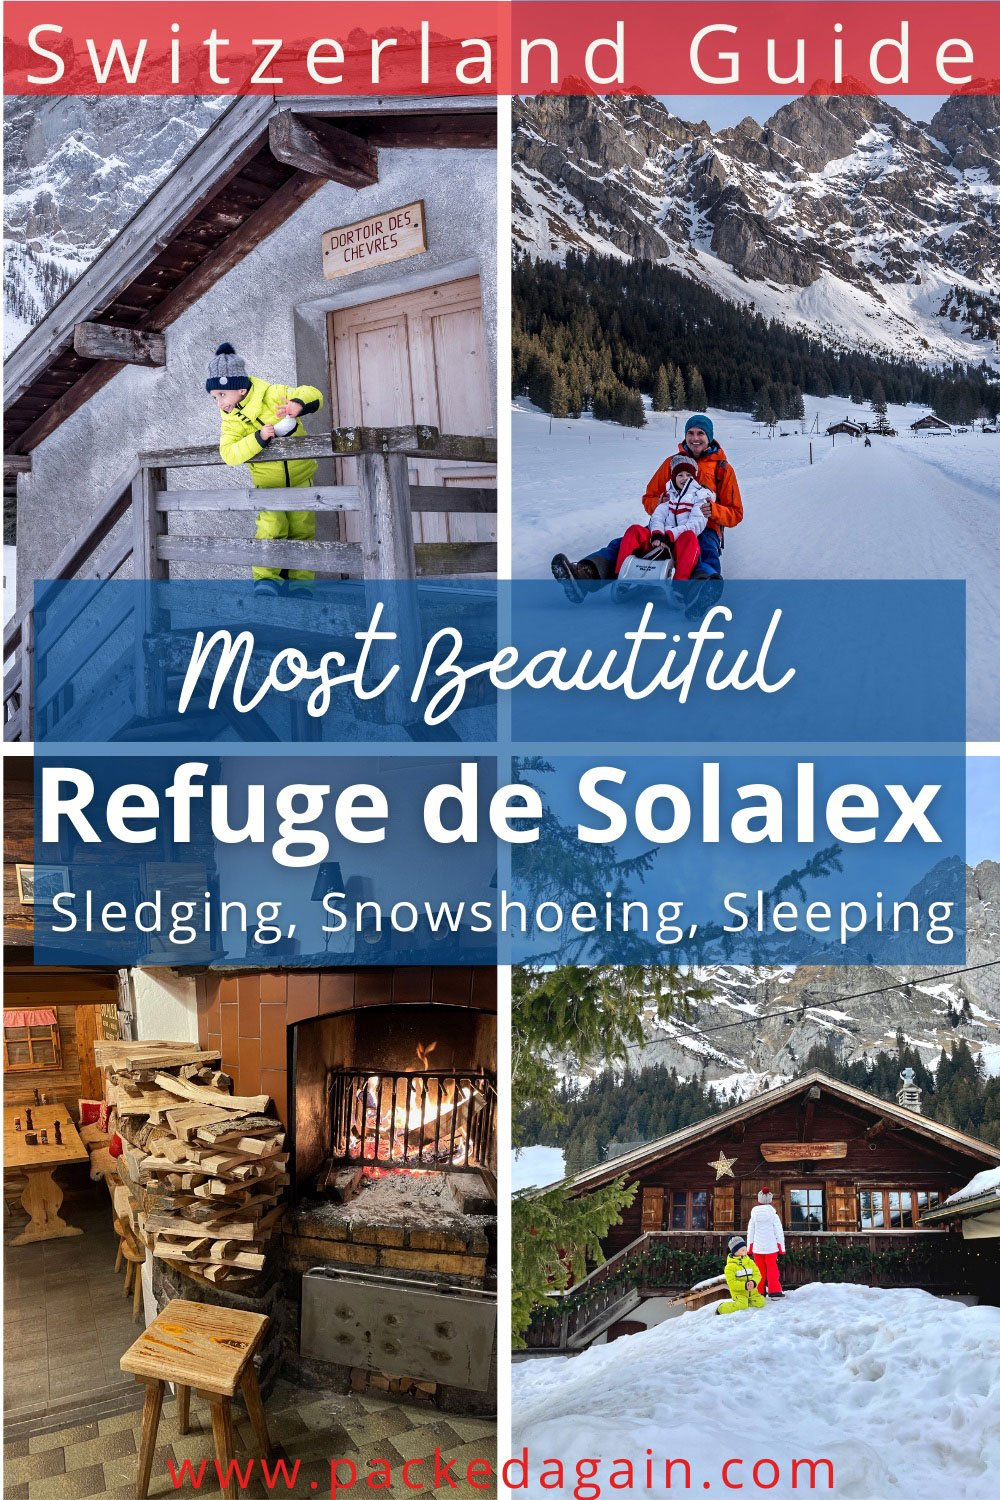 a guide to the refuge de Solalex